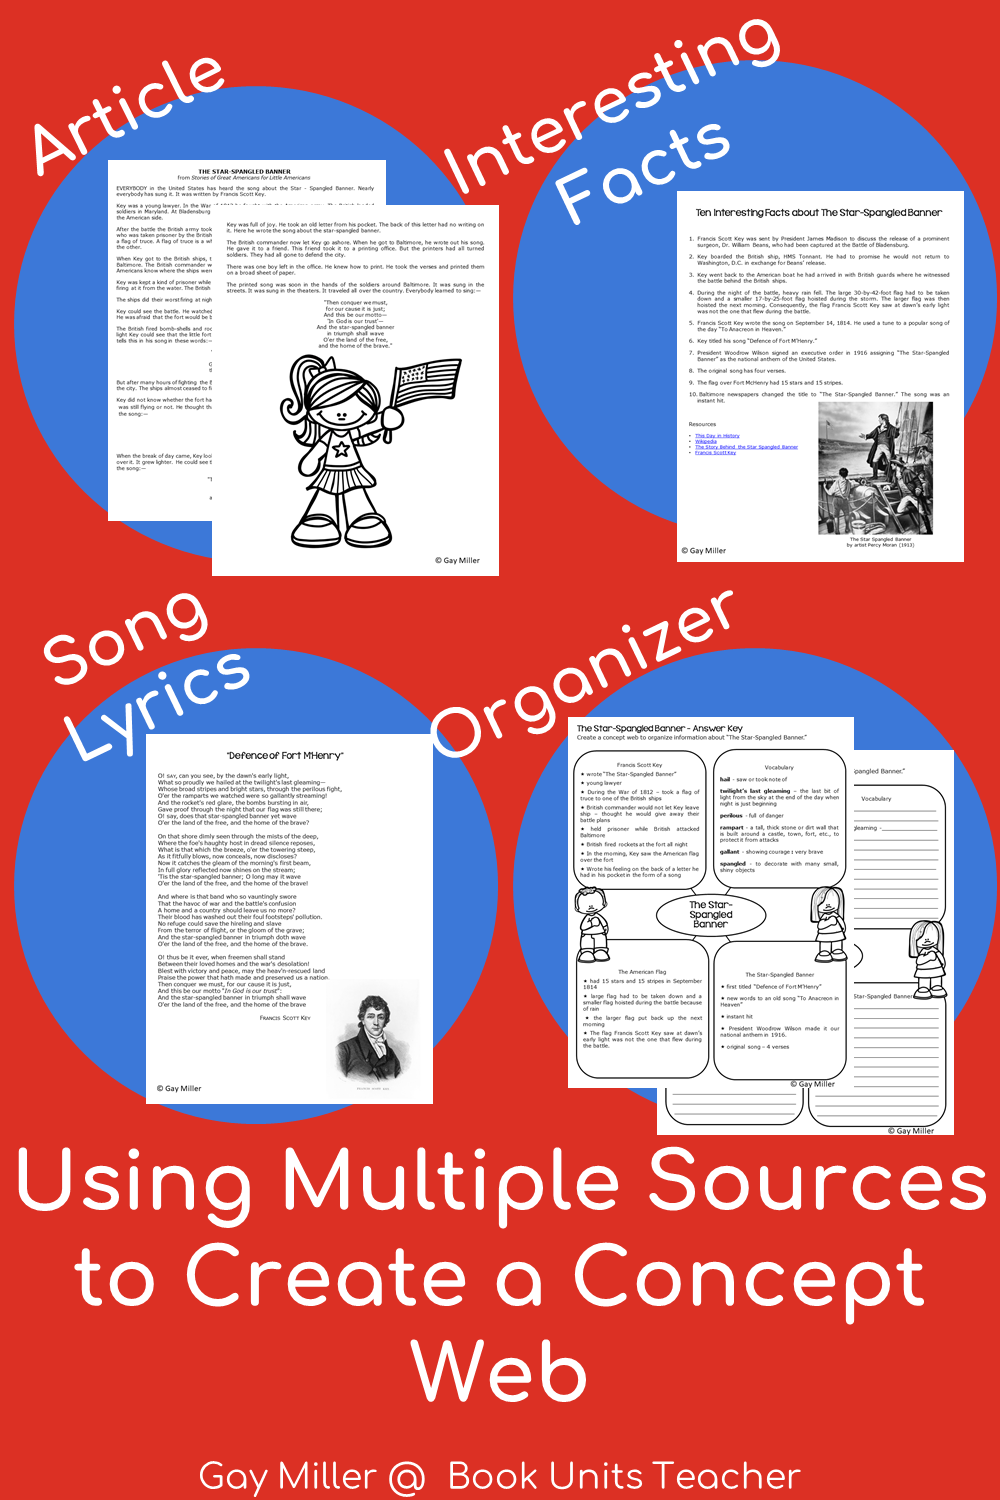 Using Francis Scott Key and the Story of the Star-Spangled Banner to Create a Concept Web